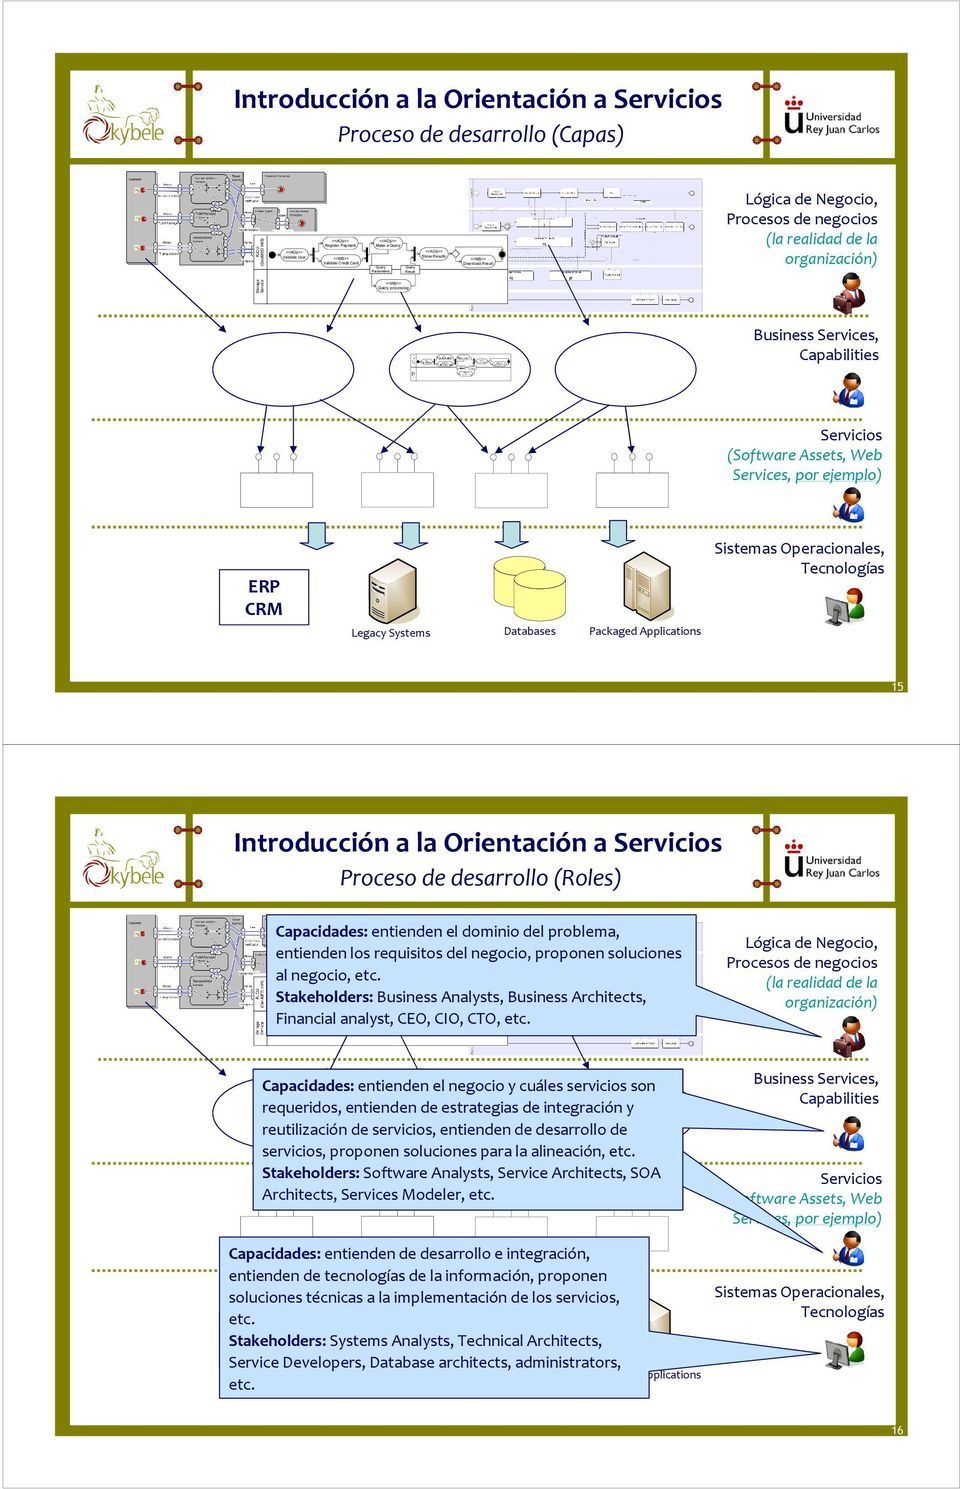 (Software Assets, Web Services, por ejemplo) ERP CRM Legacy Systems Databases Packaged Applications Sistemas Operacionales, Tecnologías 15 Introducción a la Orientación a Proceso de desarrollo